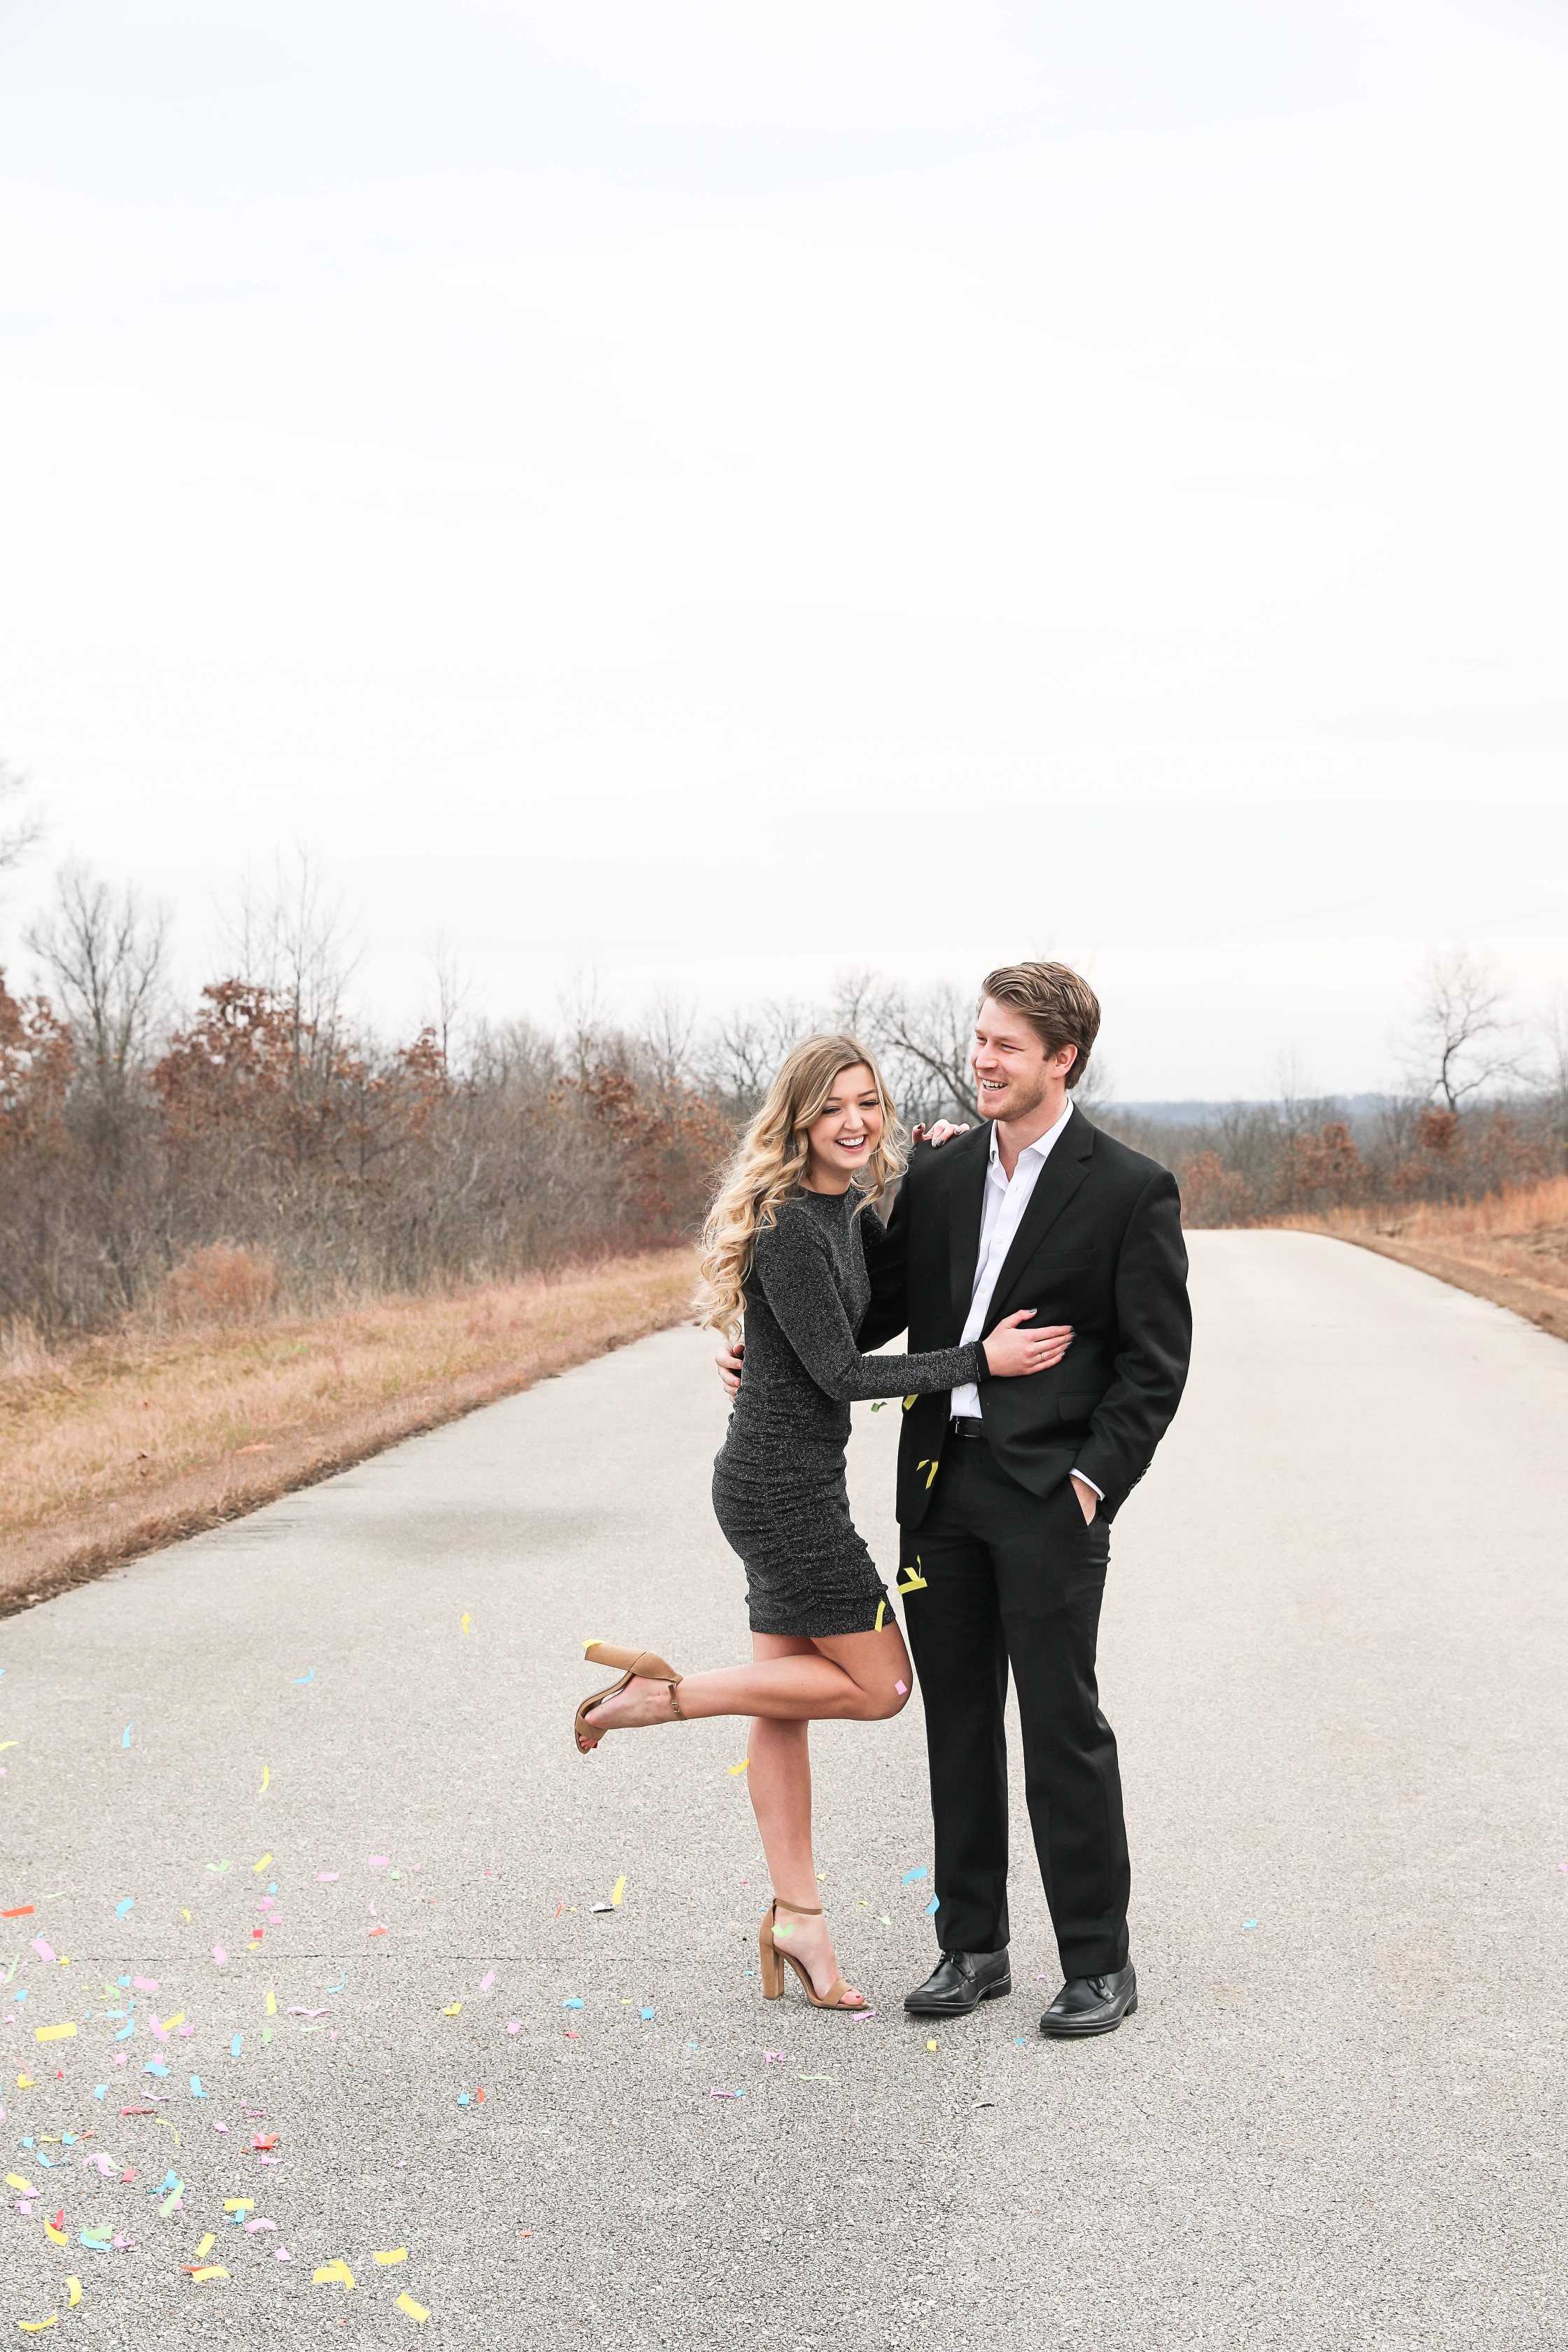 New Year's Eve photoshoot 2019! The cutest confetti photos! Hear the story about how I met my boyfriend one year ago on New Year's Eve! These are super cute couple photos! Details on fashion blog daily dose of charm by lauren lindmark